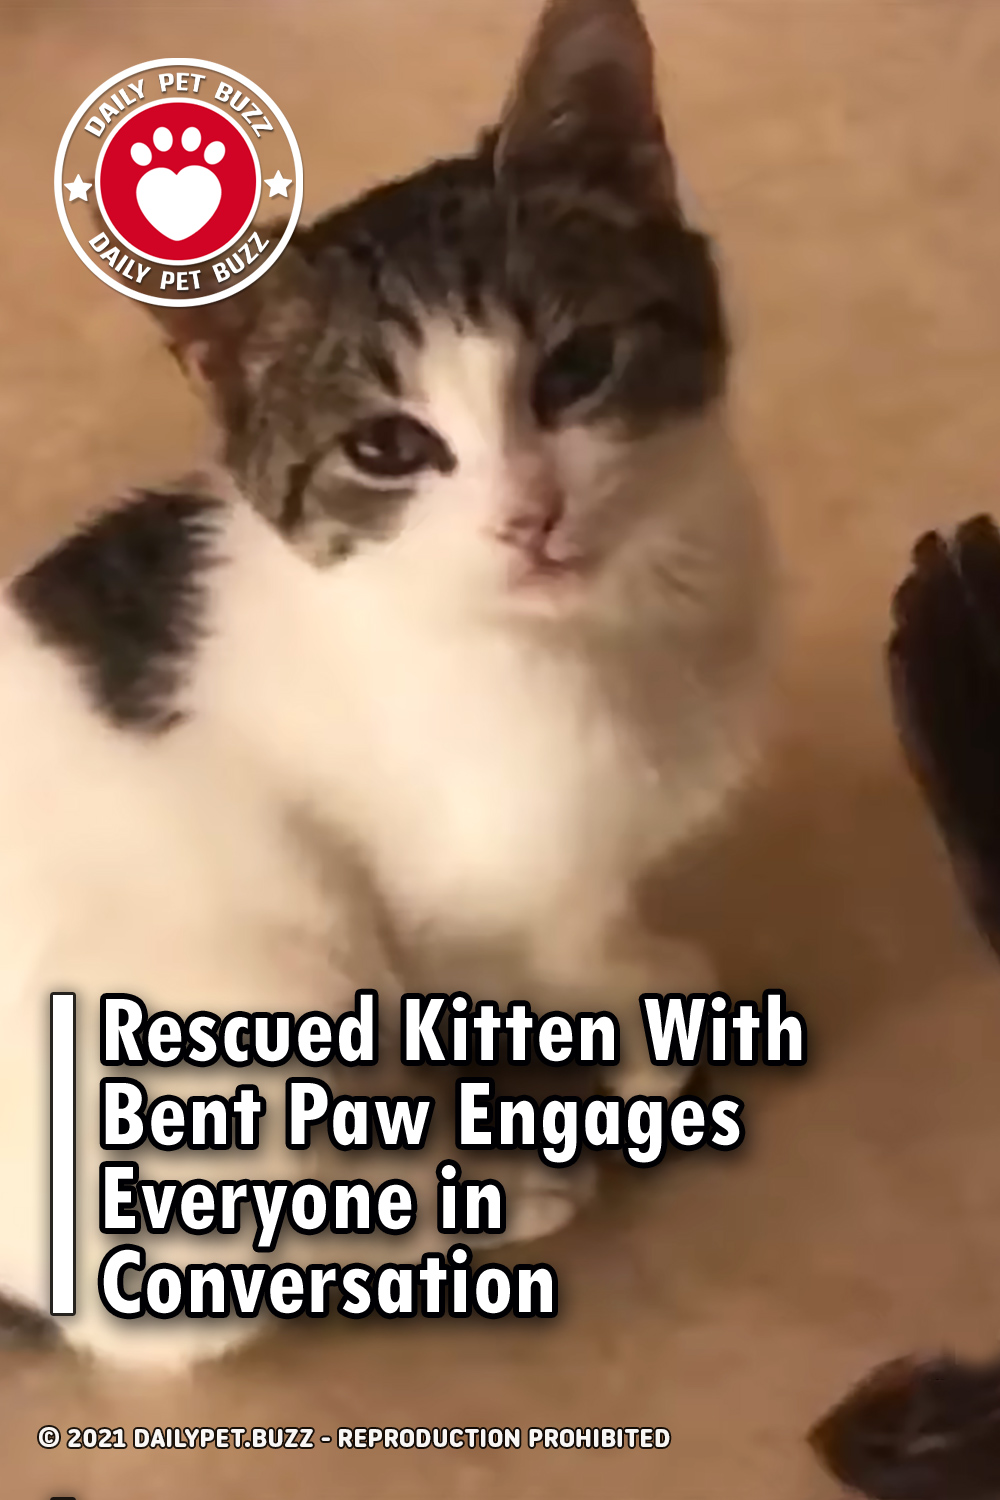 Rescued Kitten With Bent Paw Engages Everyone in Conversation